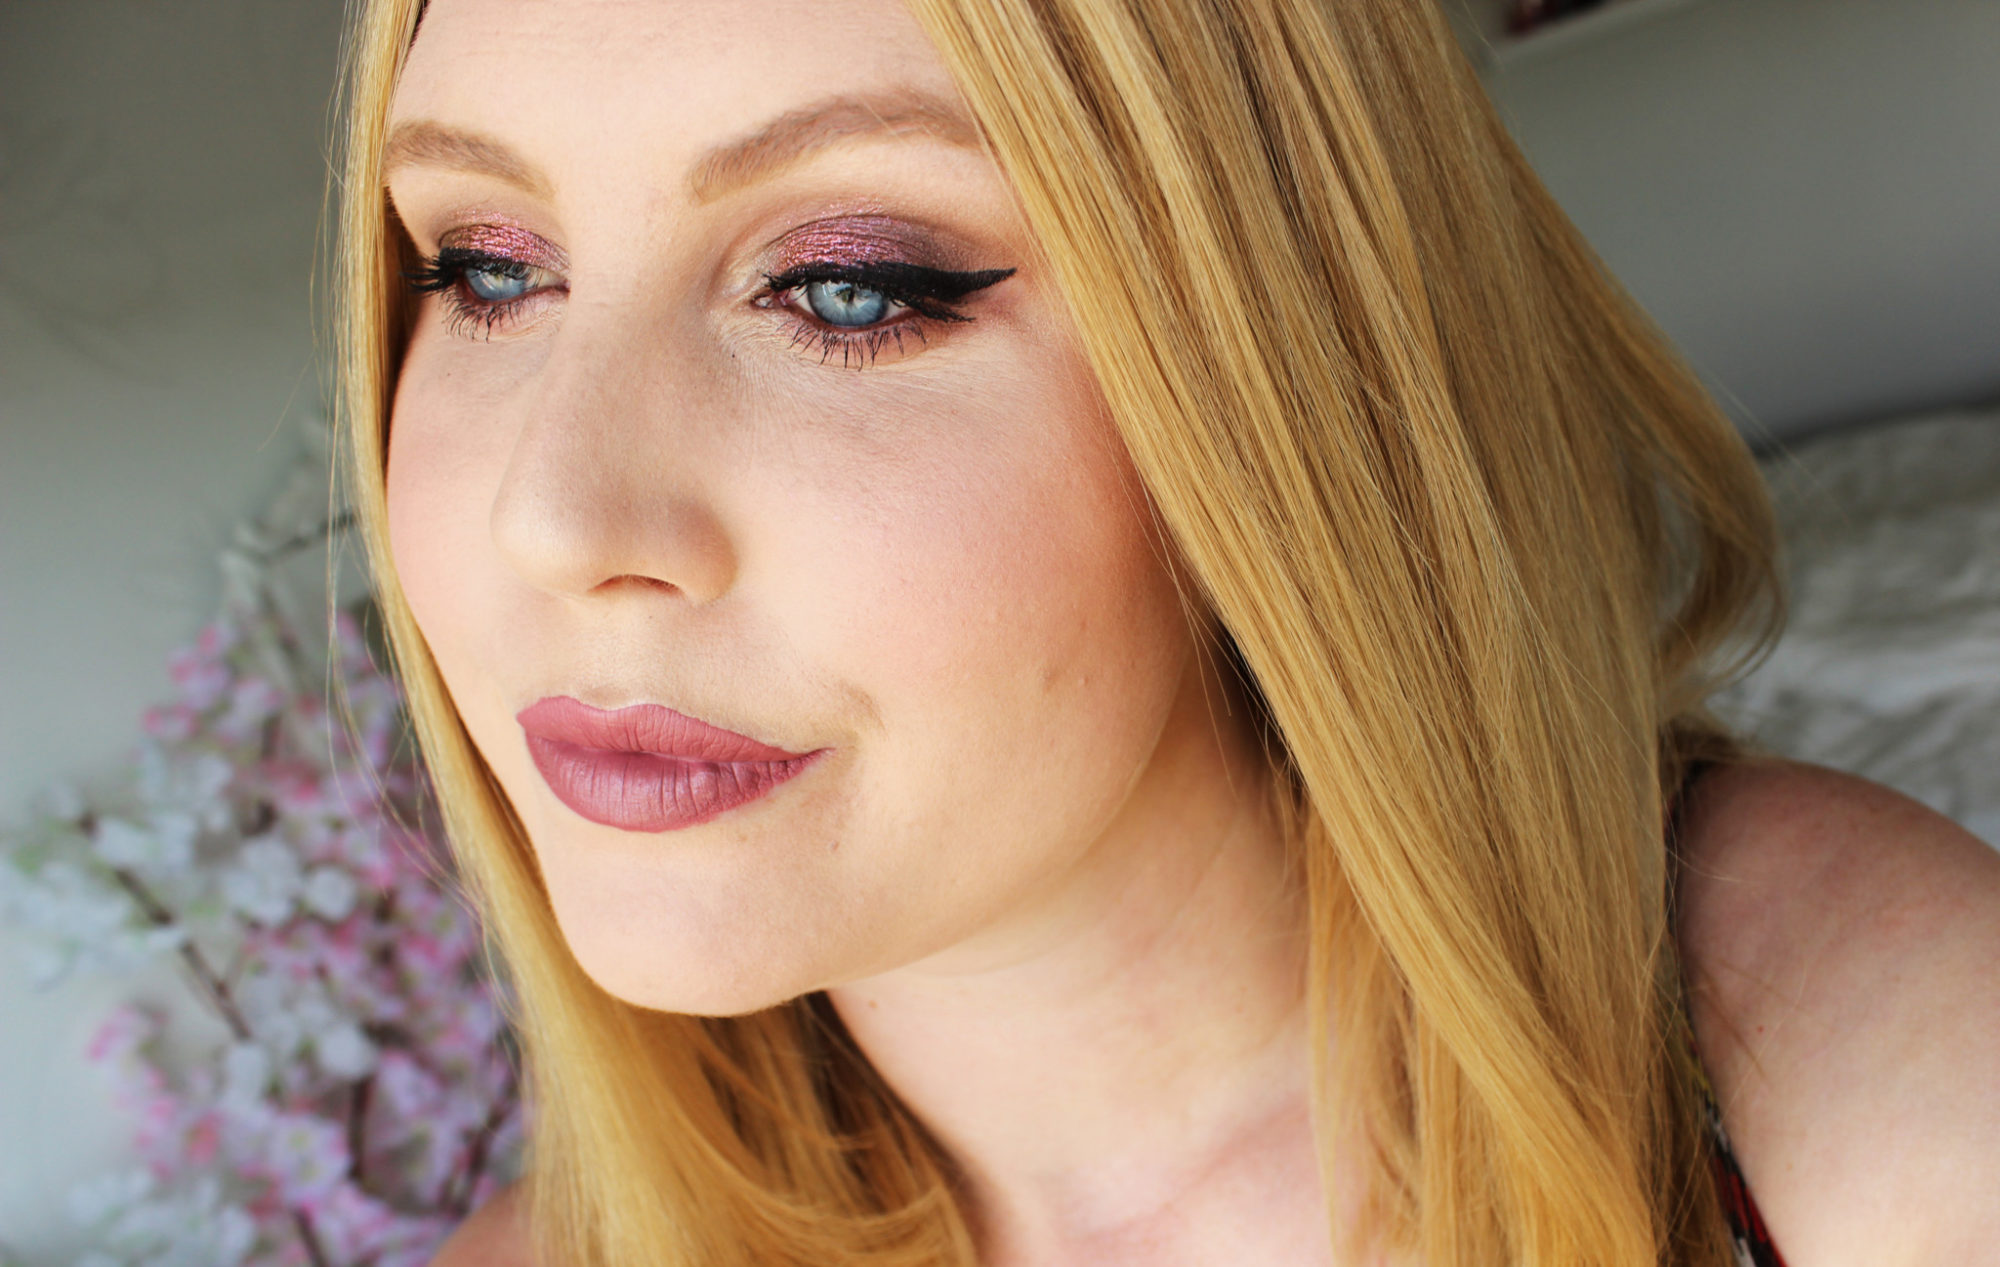 Sminkning med Colourpop, Inglot och Too Faced